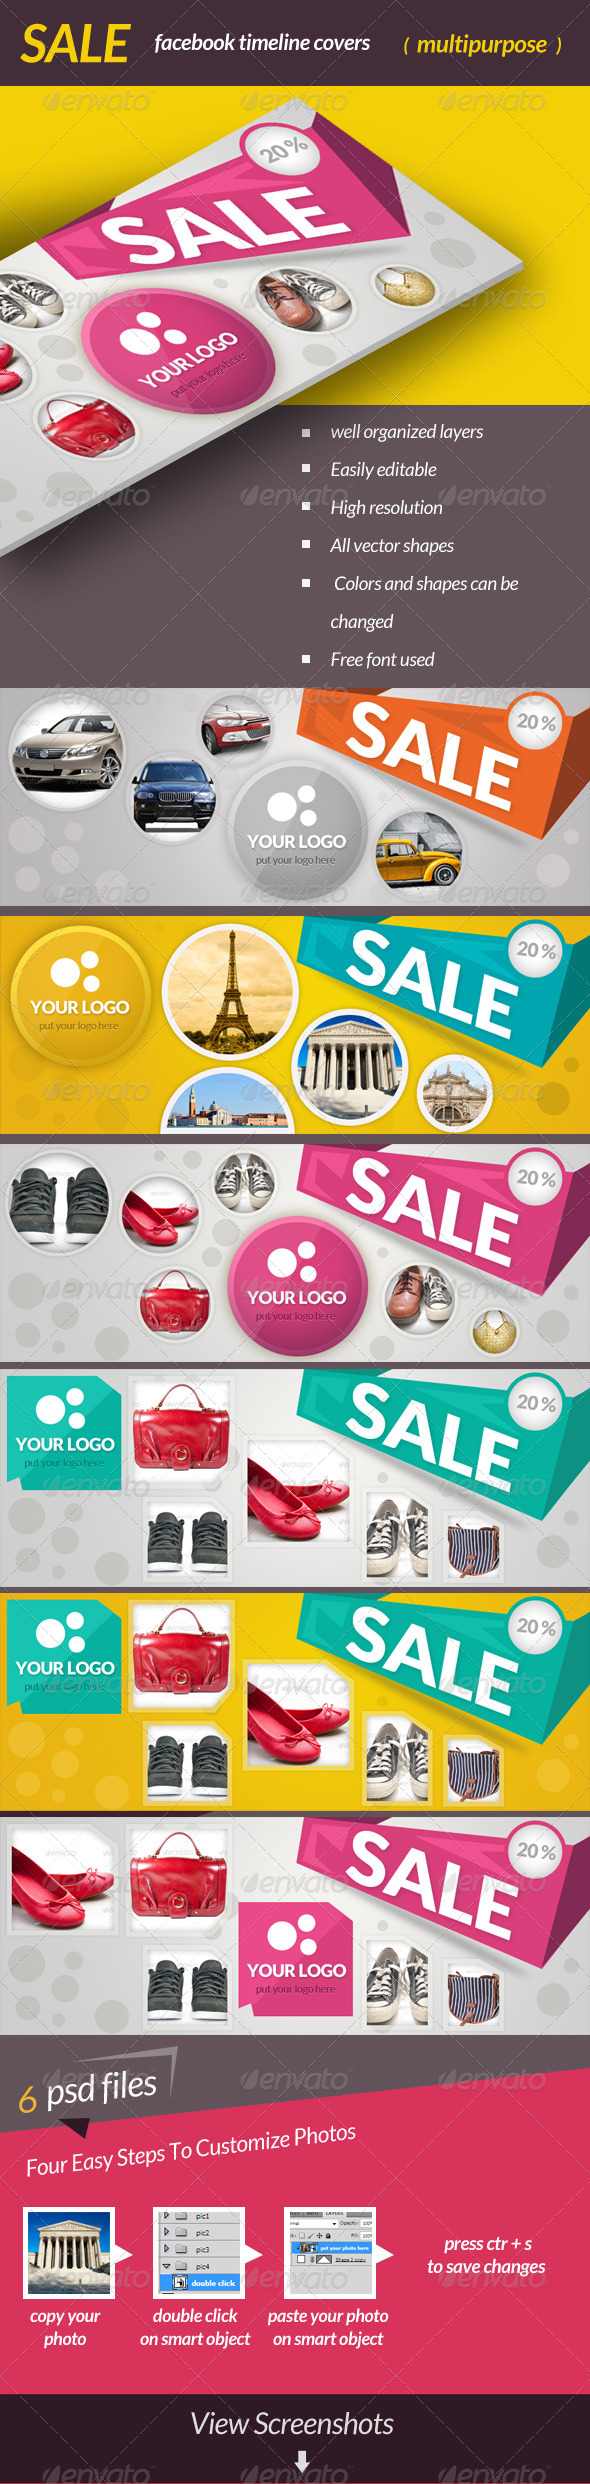 GraphicRiver SALE-Facebook Timeline Covers 6859264